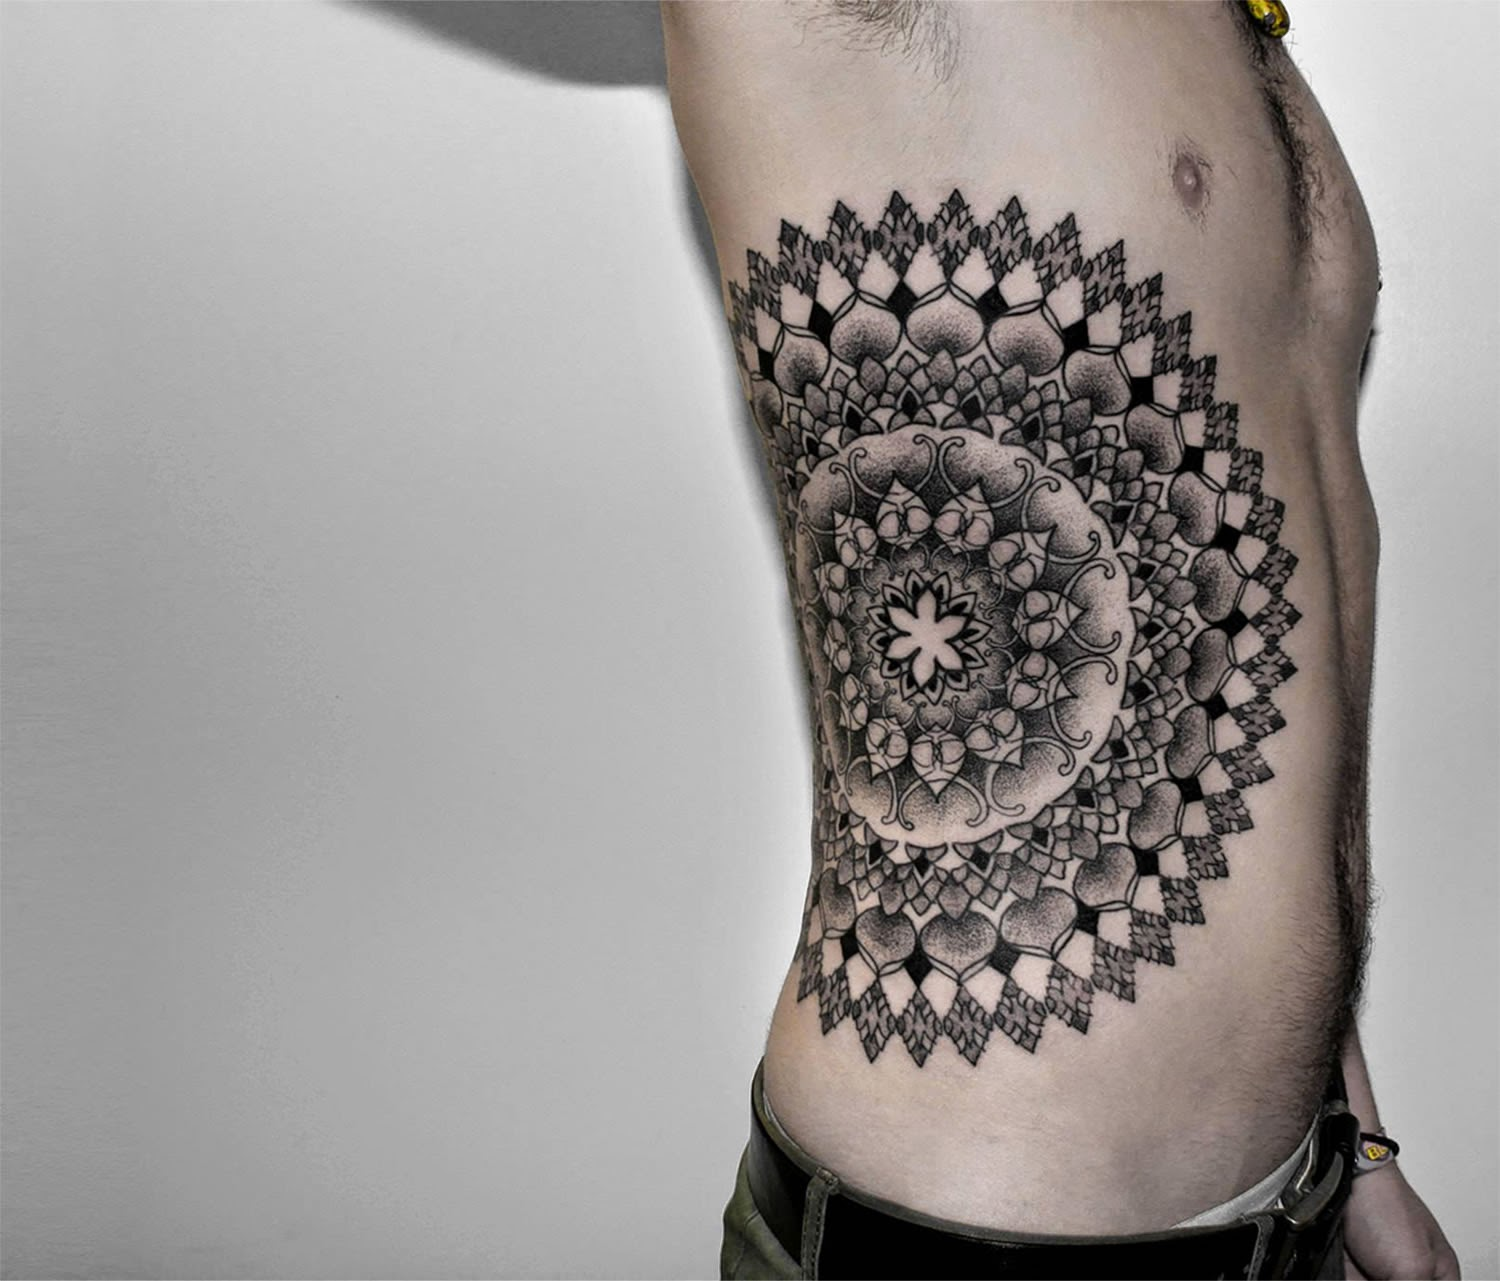 Tattoo Ideas Images: 15 Stunning Mandala Tattoo Designs For Men And Women